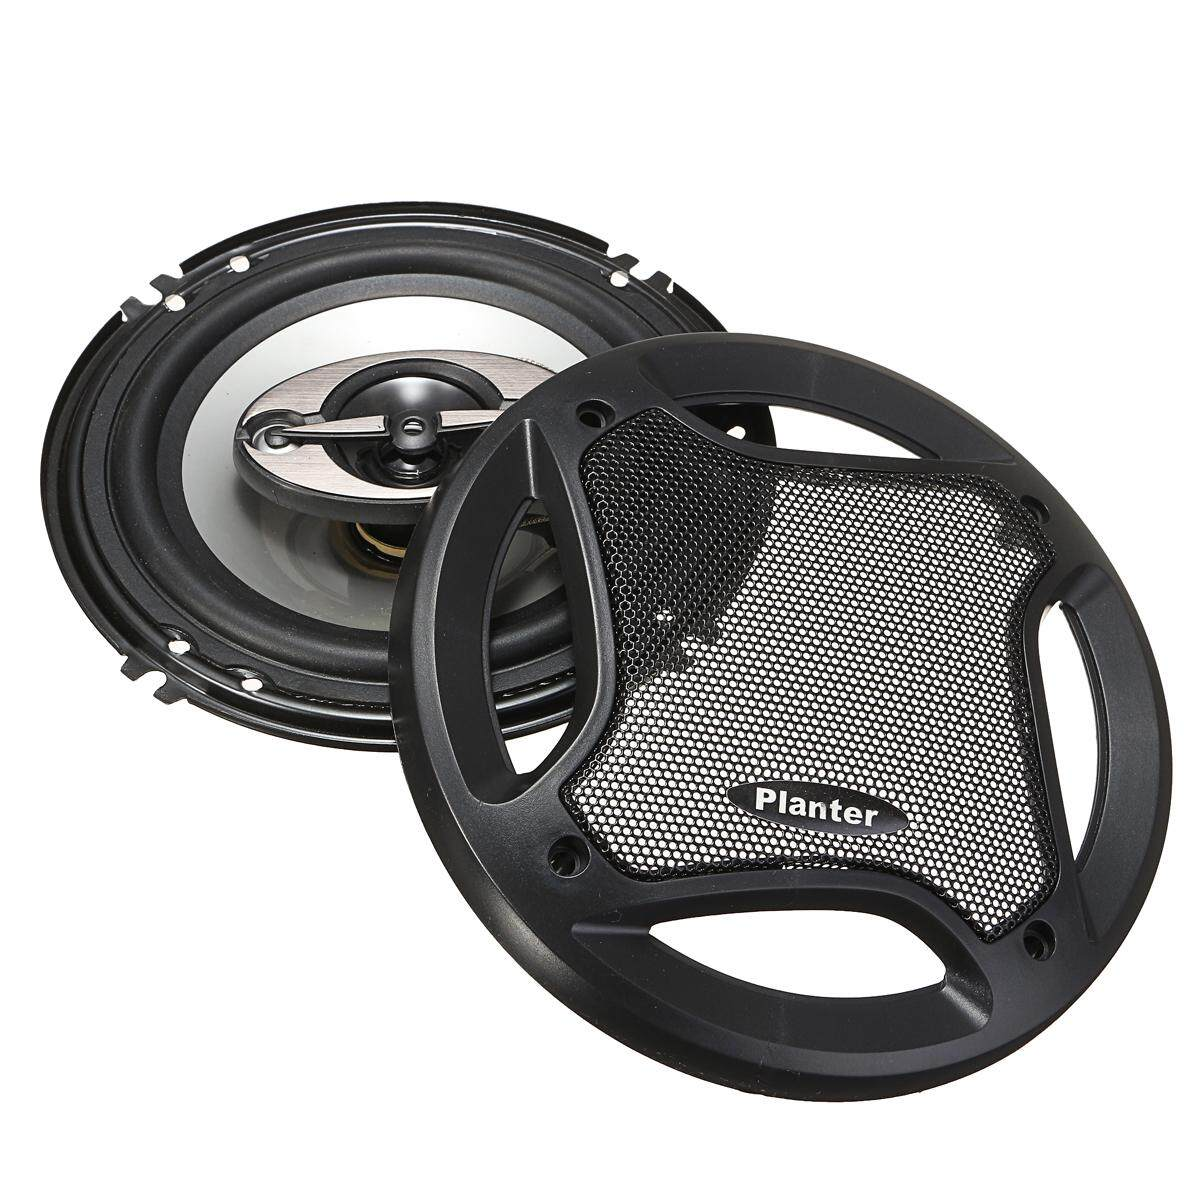 2 X Durable 6 5 Inch Car Audio Coaxial Speakers Stereo 90dB 400W 4 Way  Subwoofer